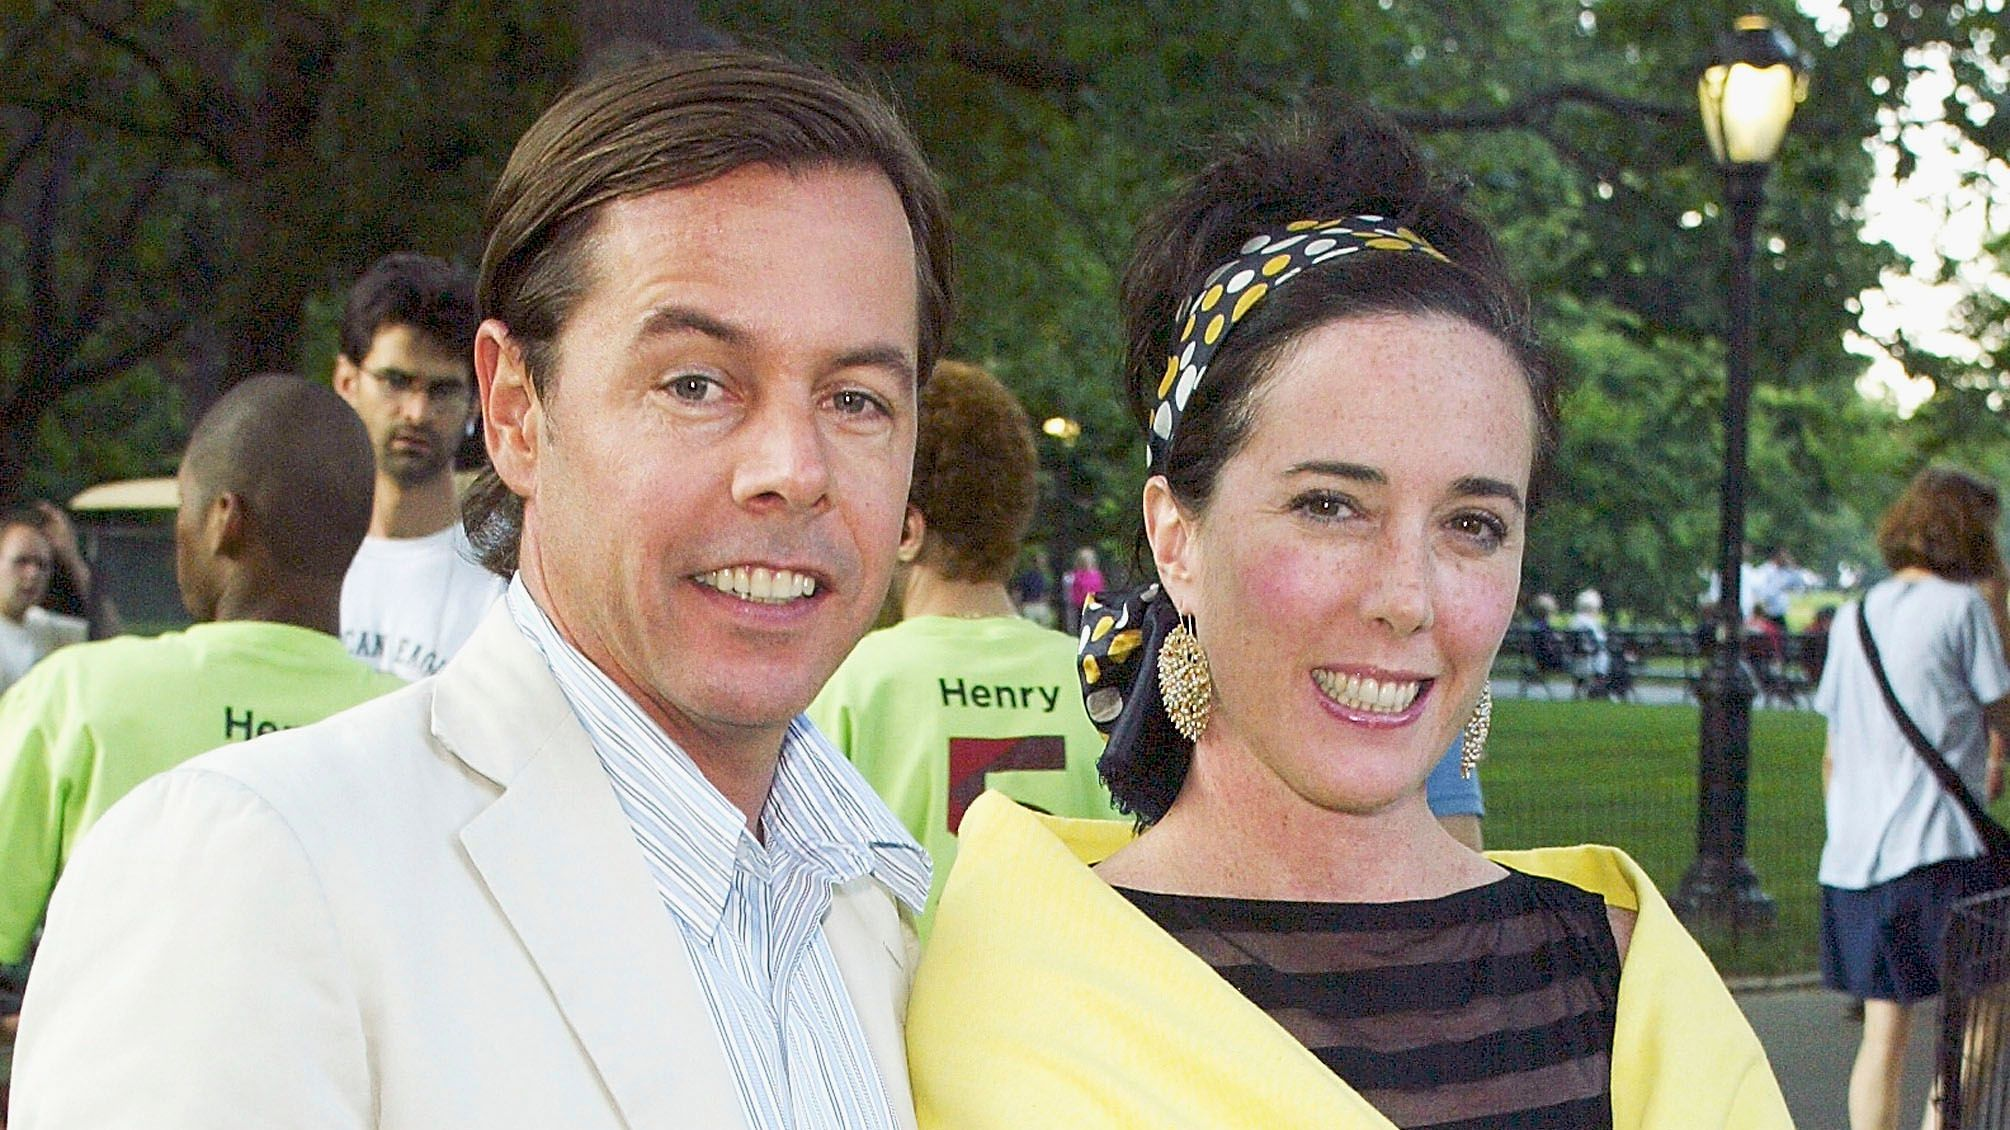 Kate Spade S Widower Shares Rare Photo Of Daughter On Late Fashion Designer S Birthday